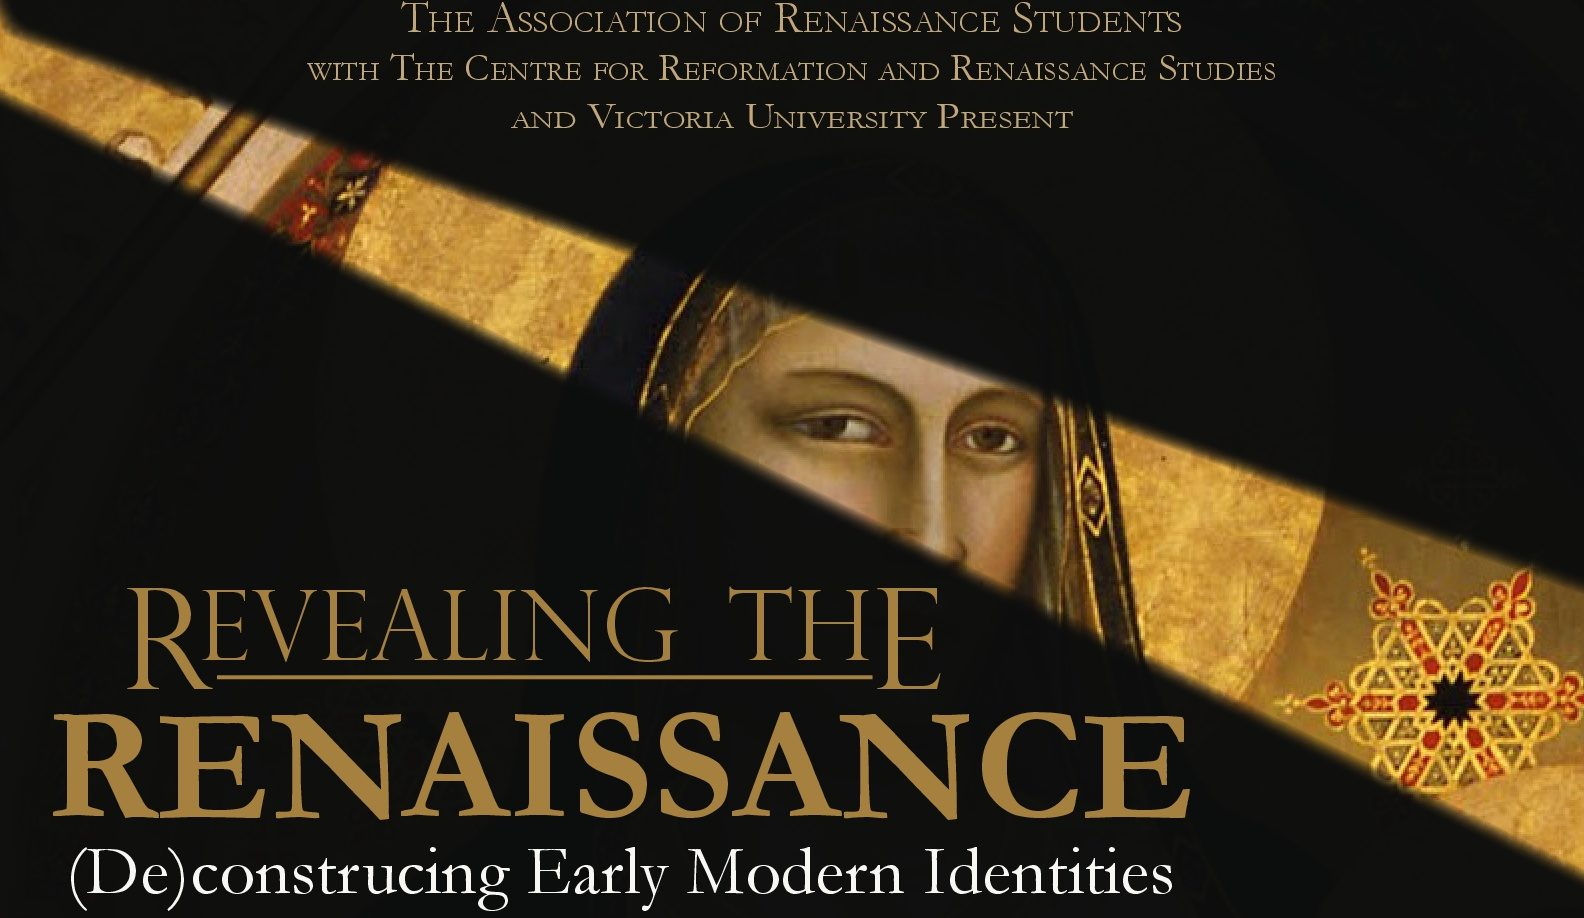 ARS Conference 2018: Revealing the Renaissance